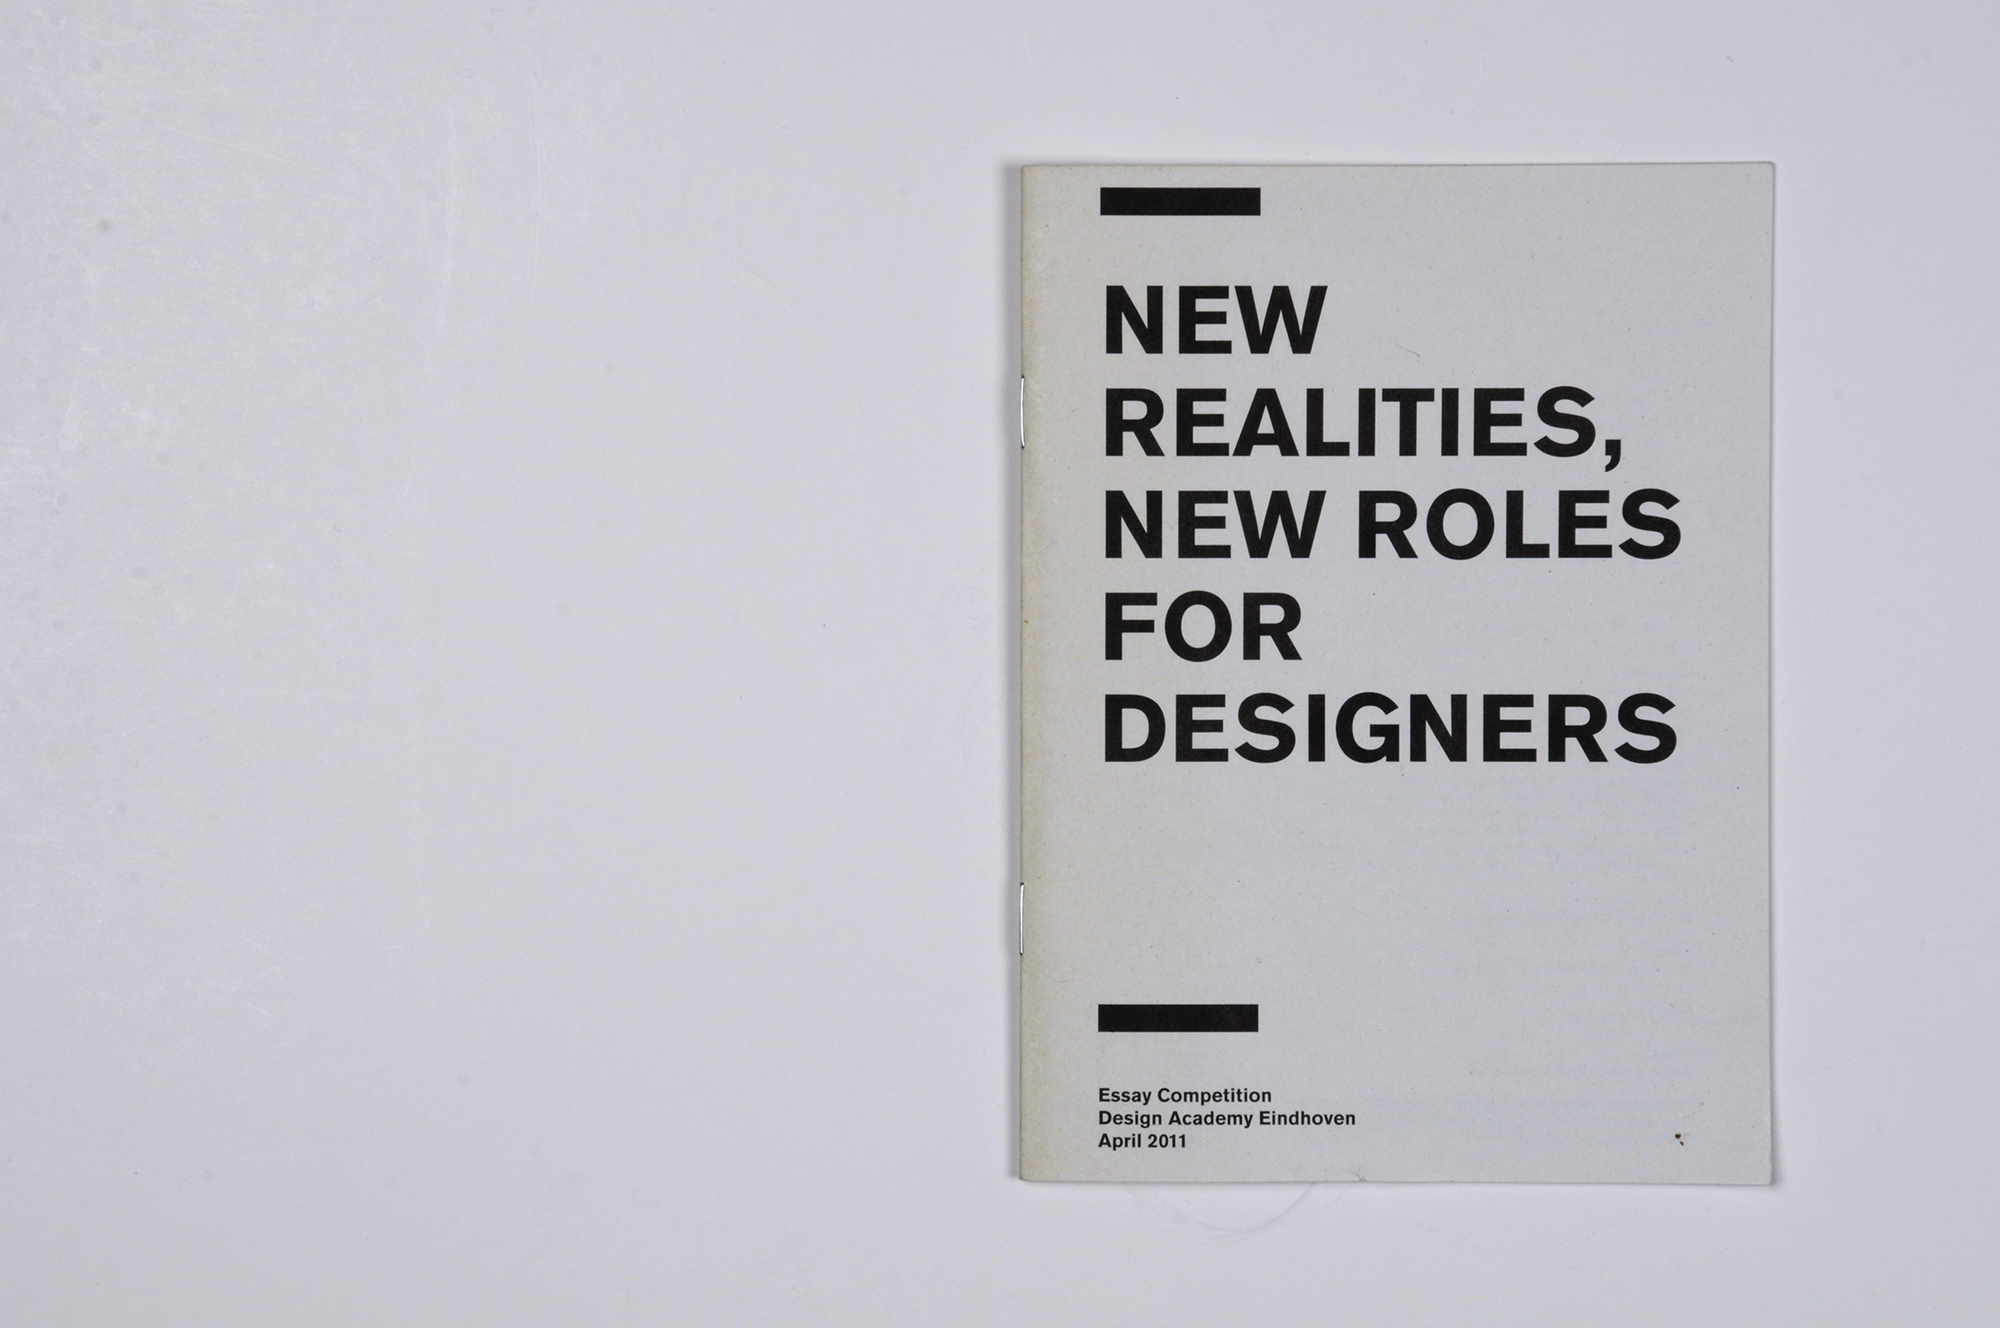 essay on design winner of the first design academy lectoraat essay competition new realities new roles for designers